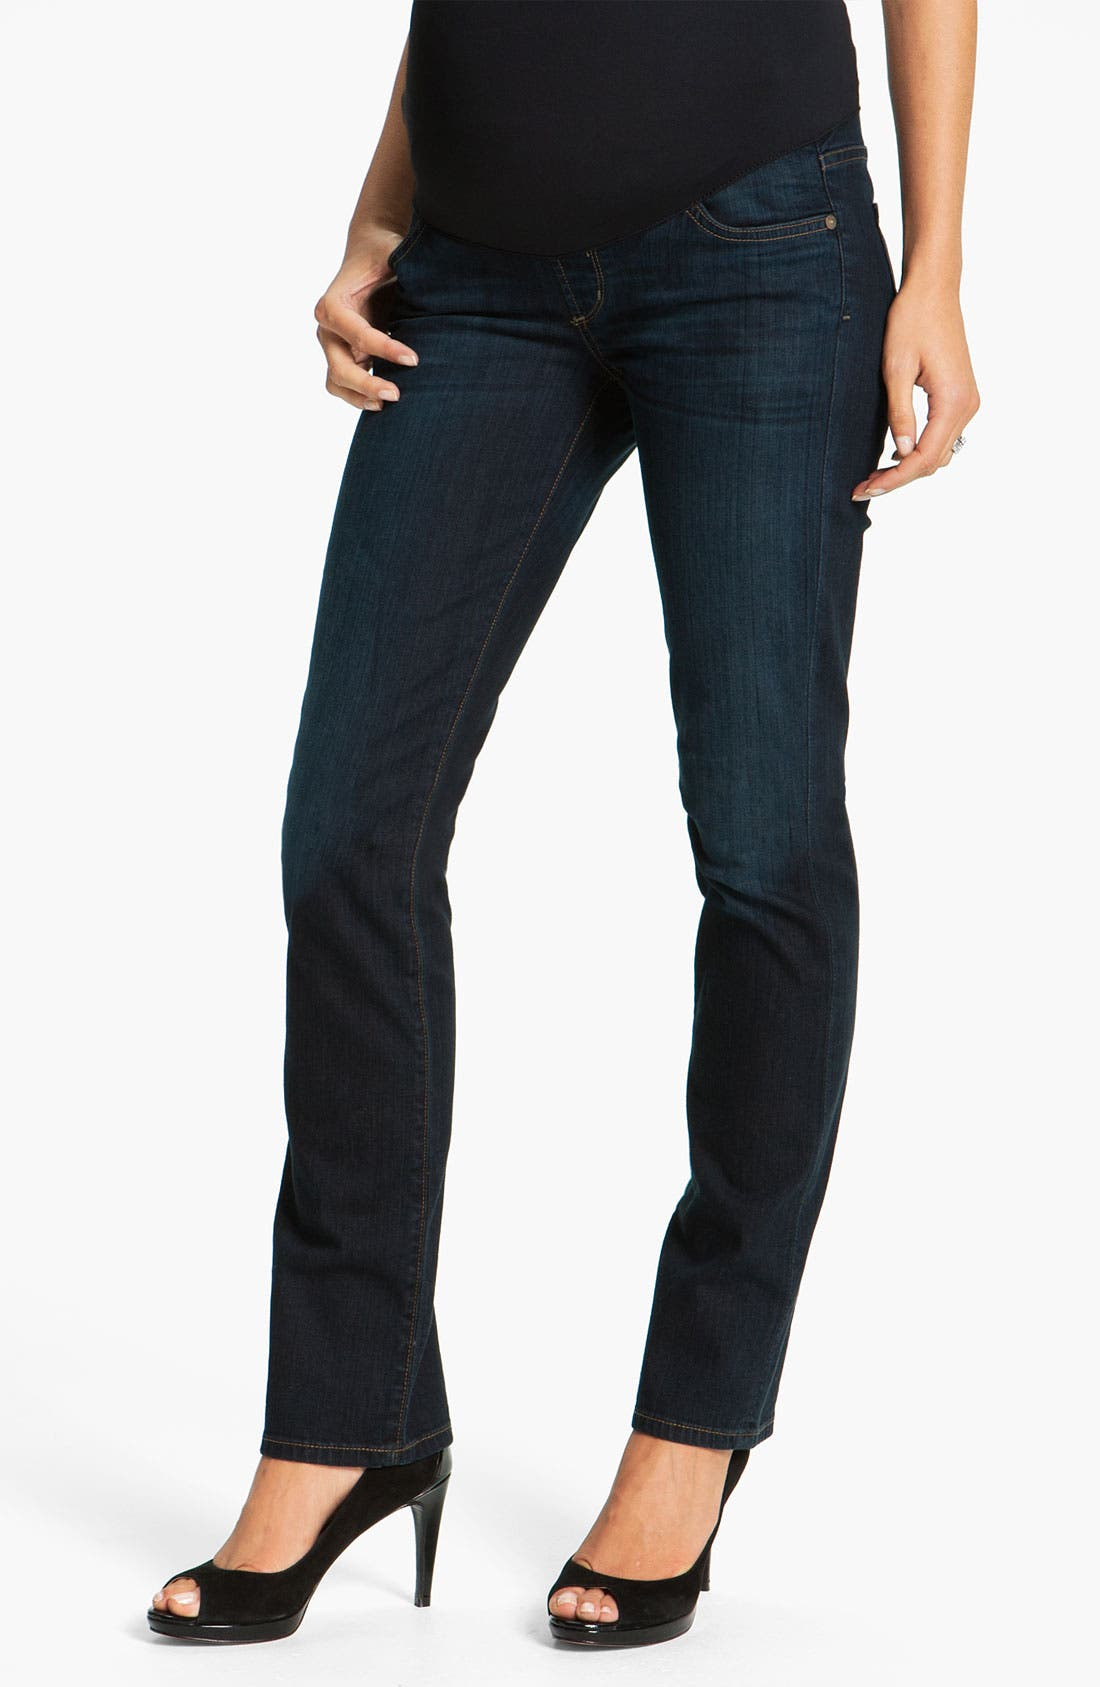 Main Image - Citizens of Humanity 'Thompson' Maternity Skinny Jeans (Faith)